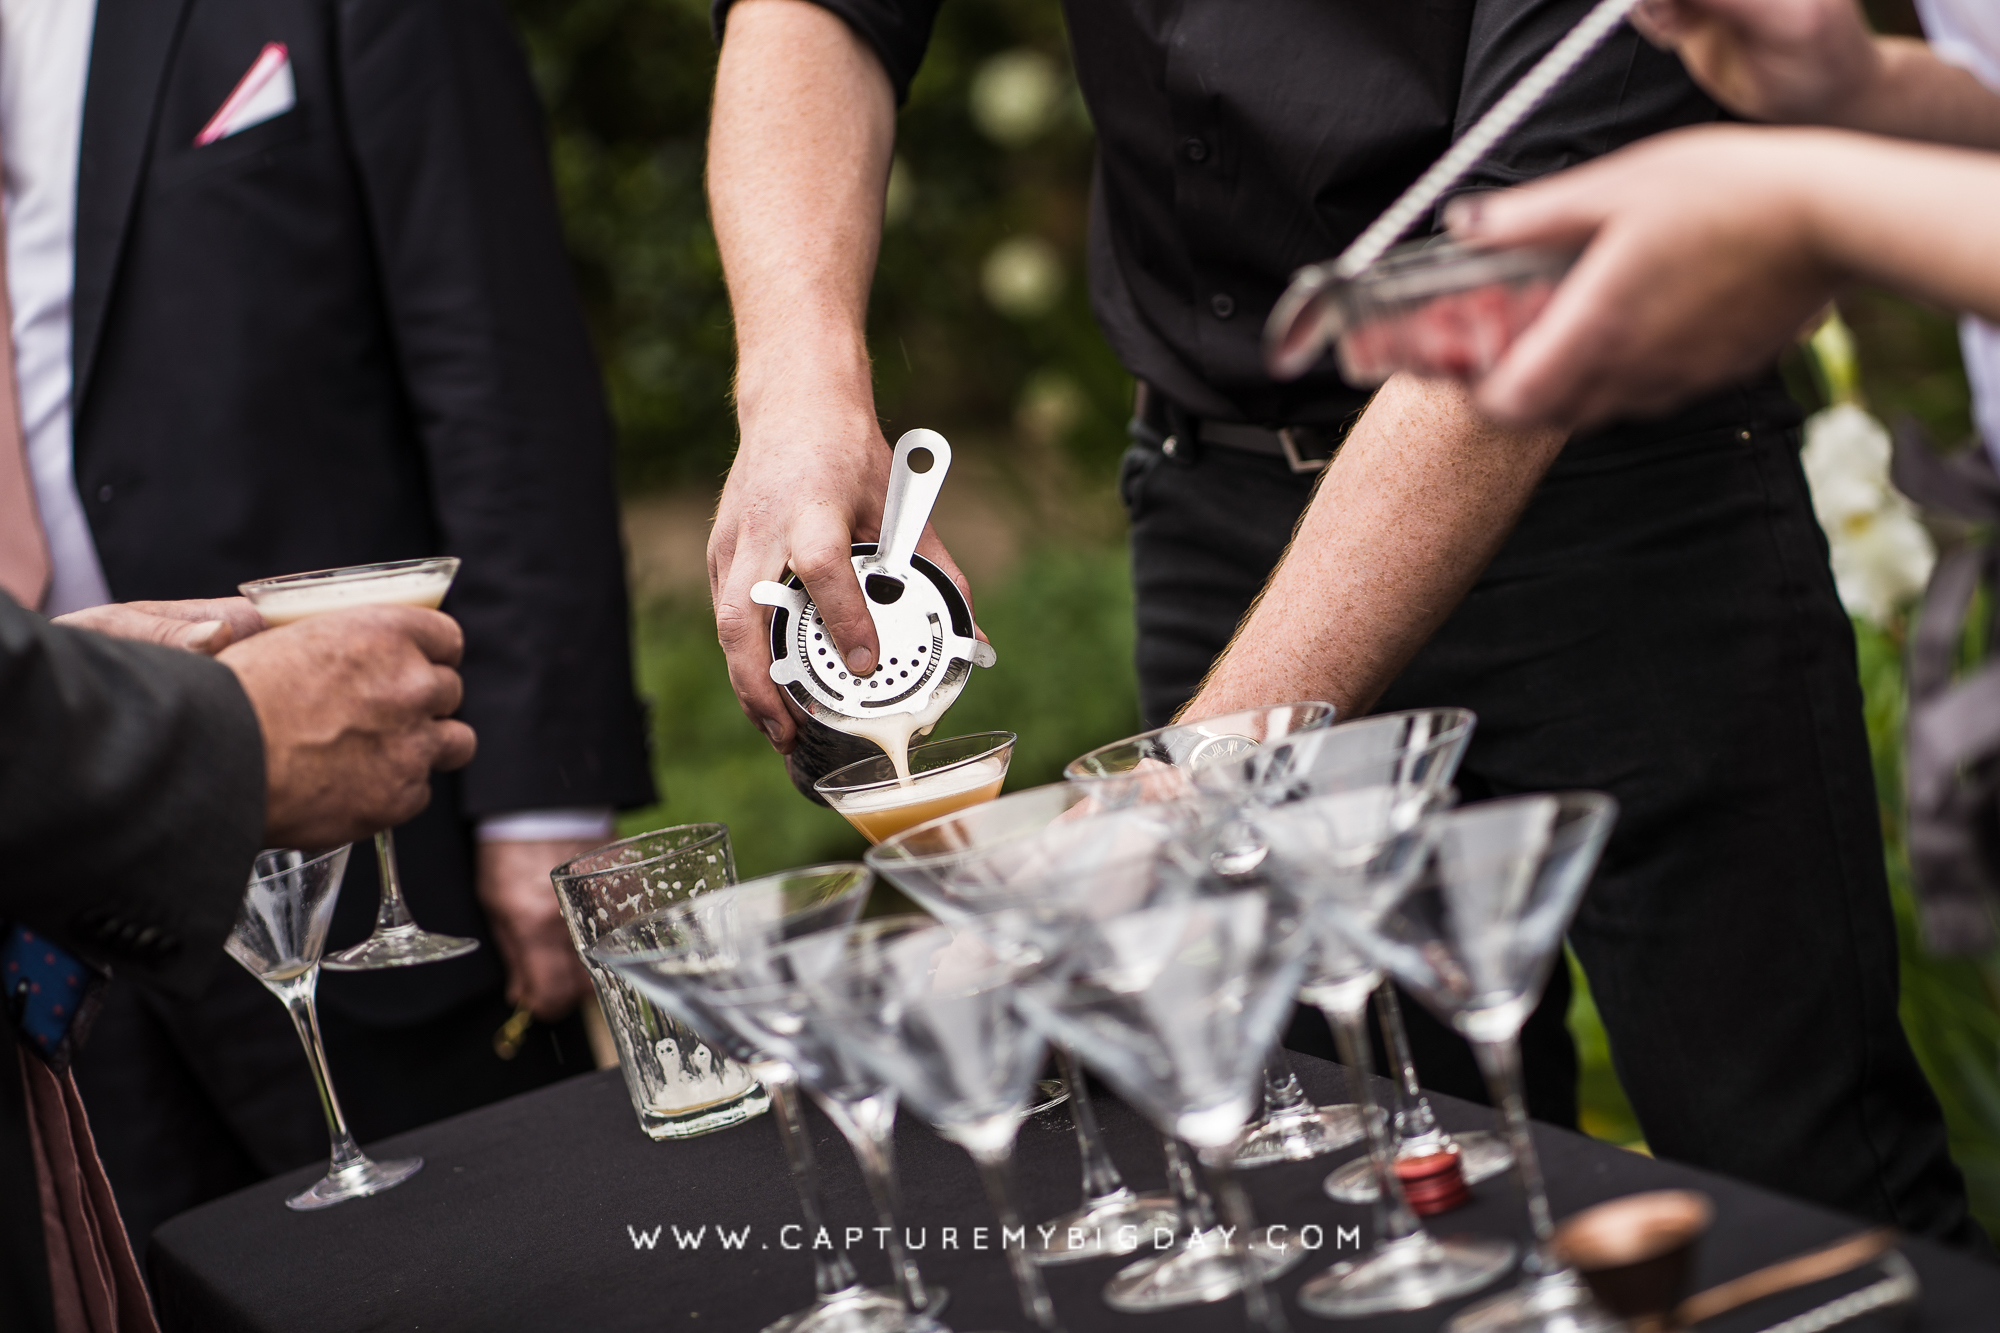 drinks being poured at wedding